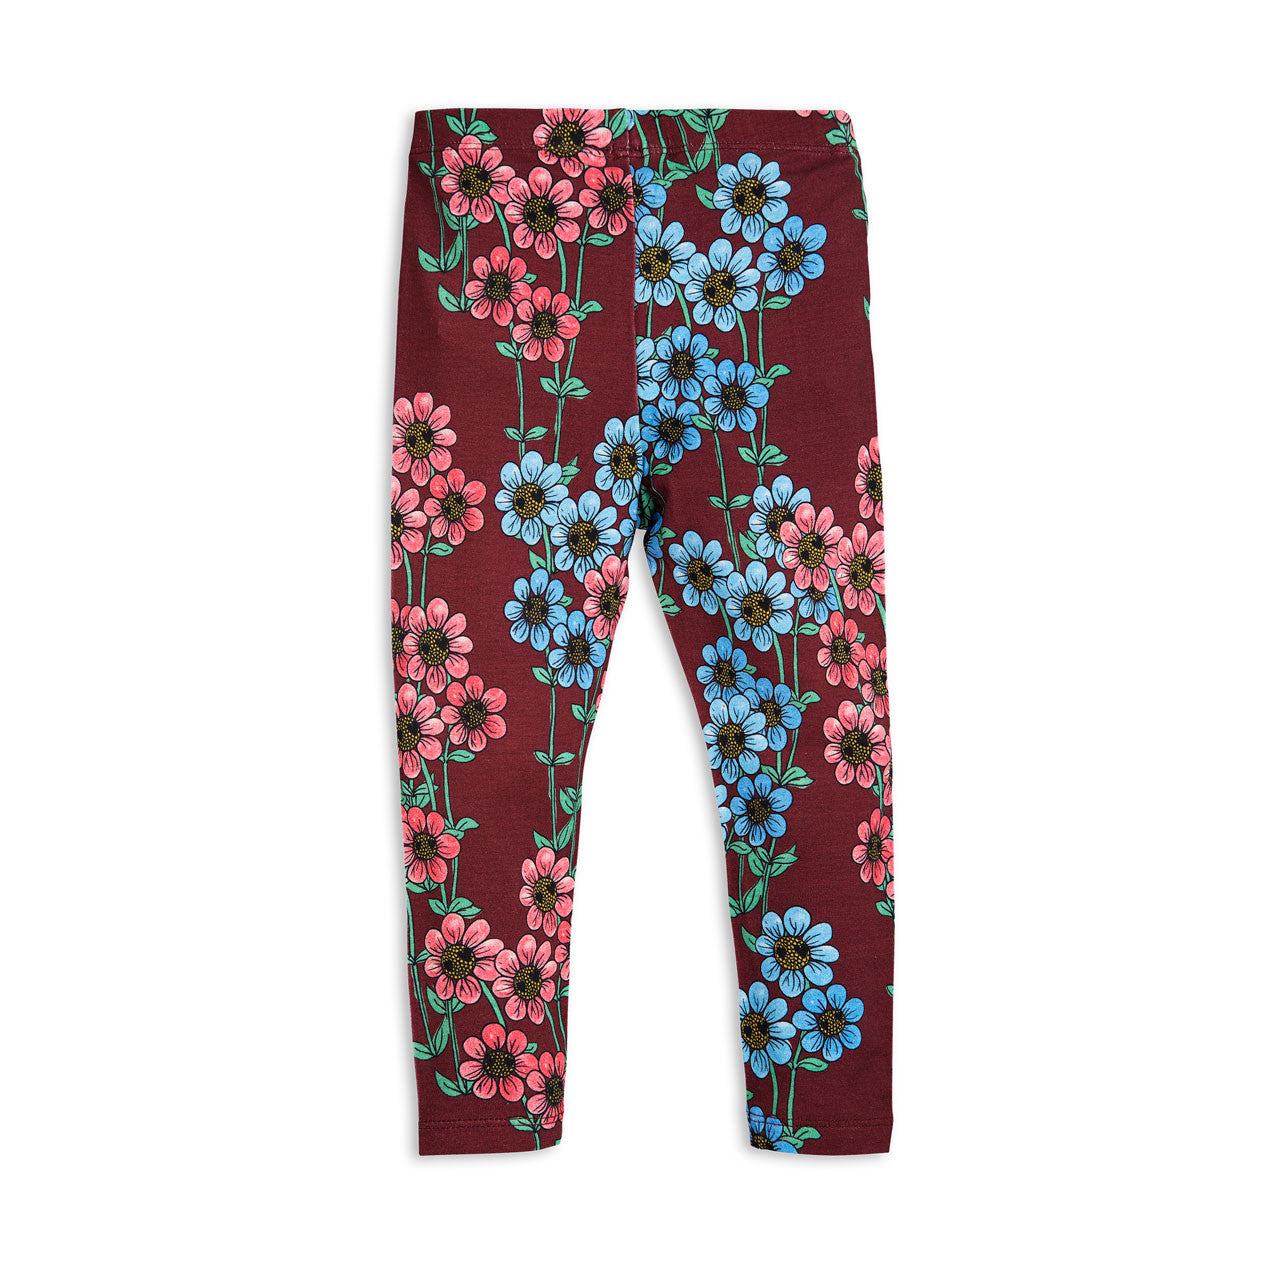 Mini Rodini Daisy Leggings - Ladida